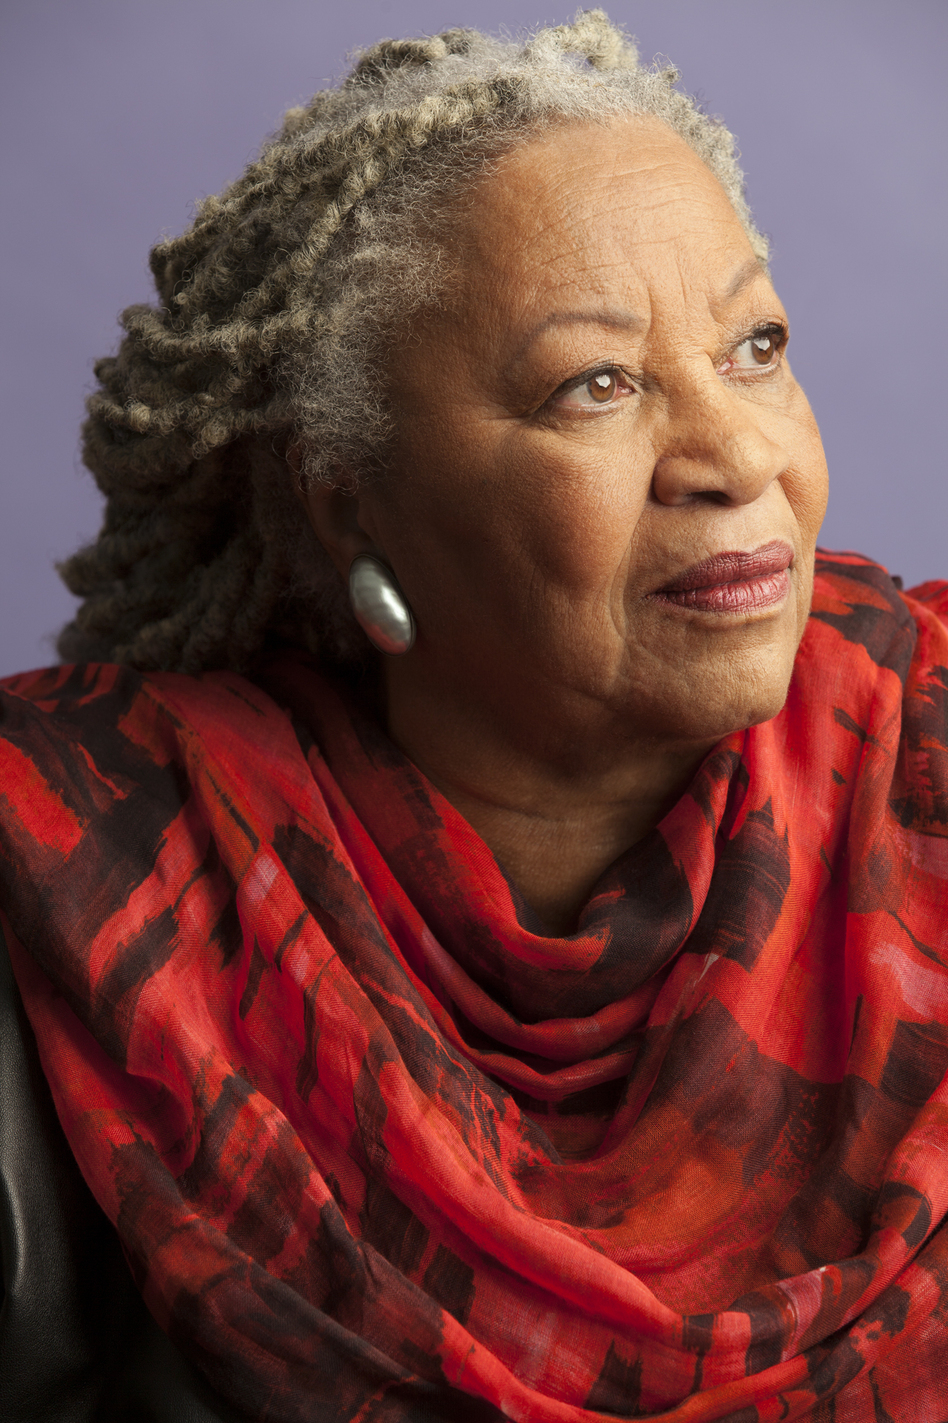 literary analysis of the novel the song of solomon by toni morisson Other essays and articles in the literature archives related to this topic include :character analysis of beloved in the novel by toni morrison • jazz by toni morrison : the symbolic.